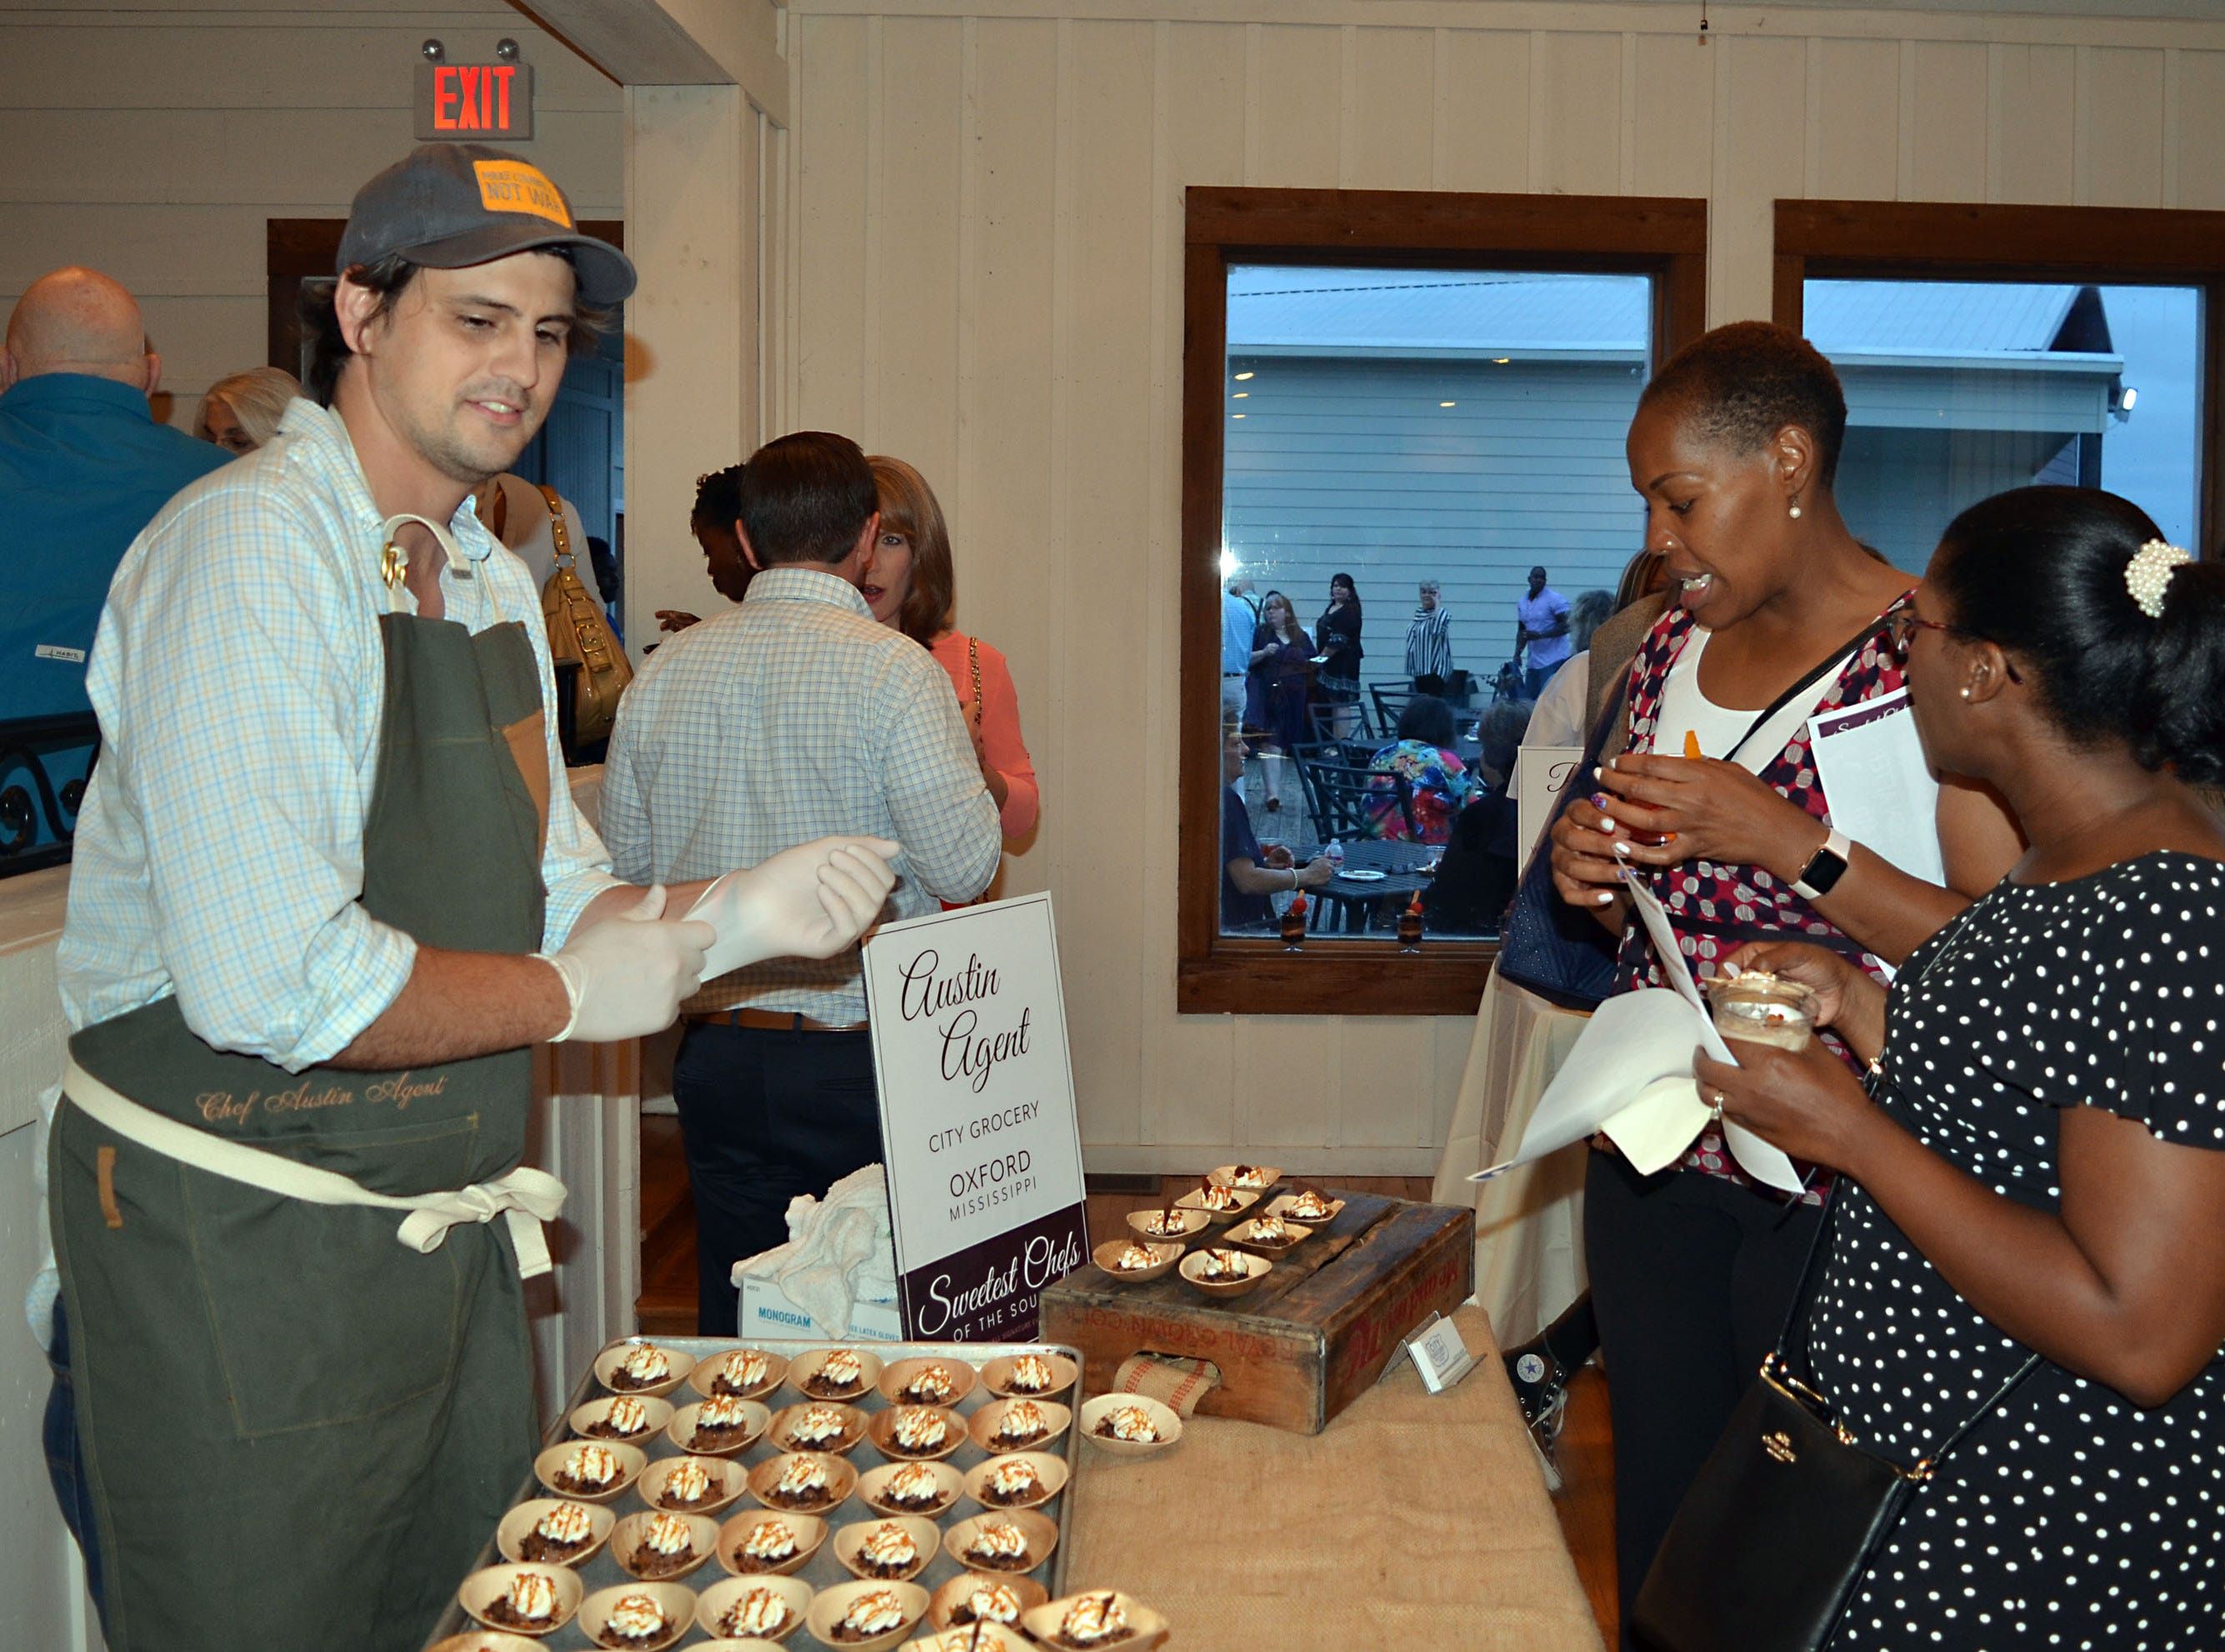 Pastry chef Austin Agent of City Grocery  in Oxford serves his Mississippi Mud Pie during The Sweetest Chefs event.